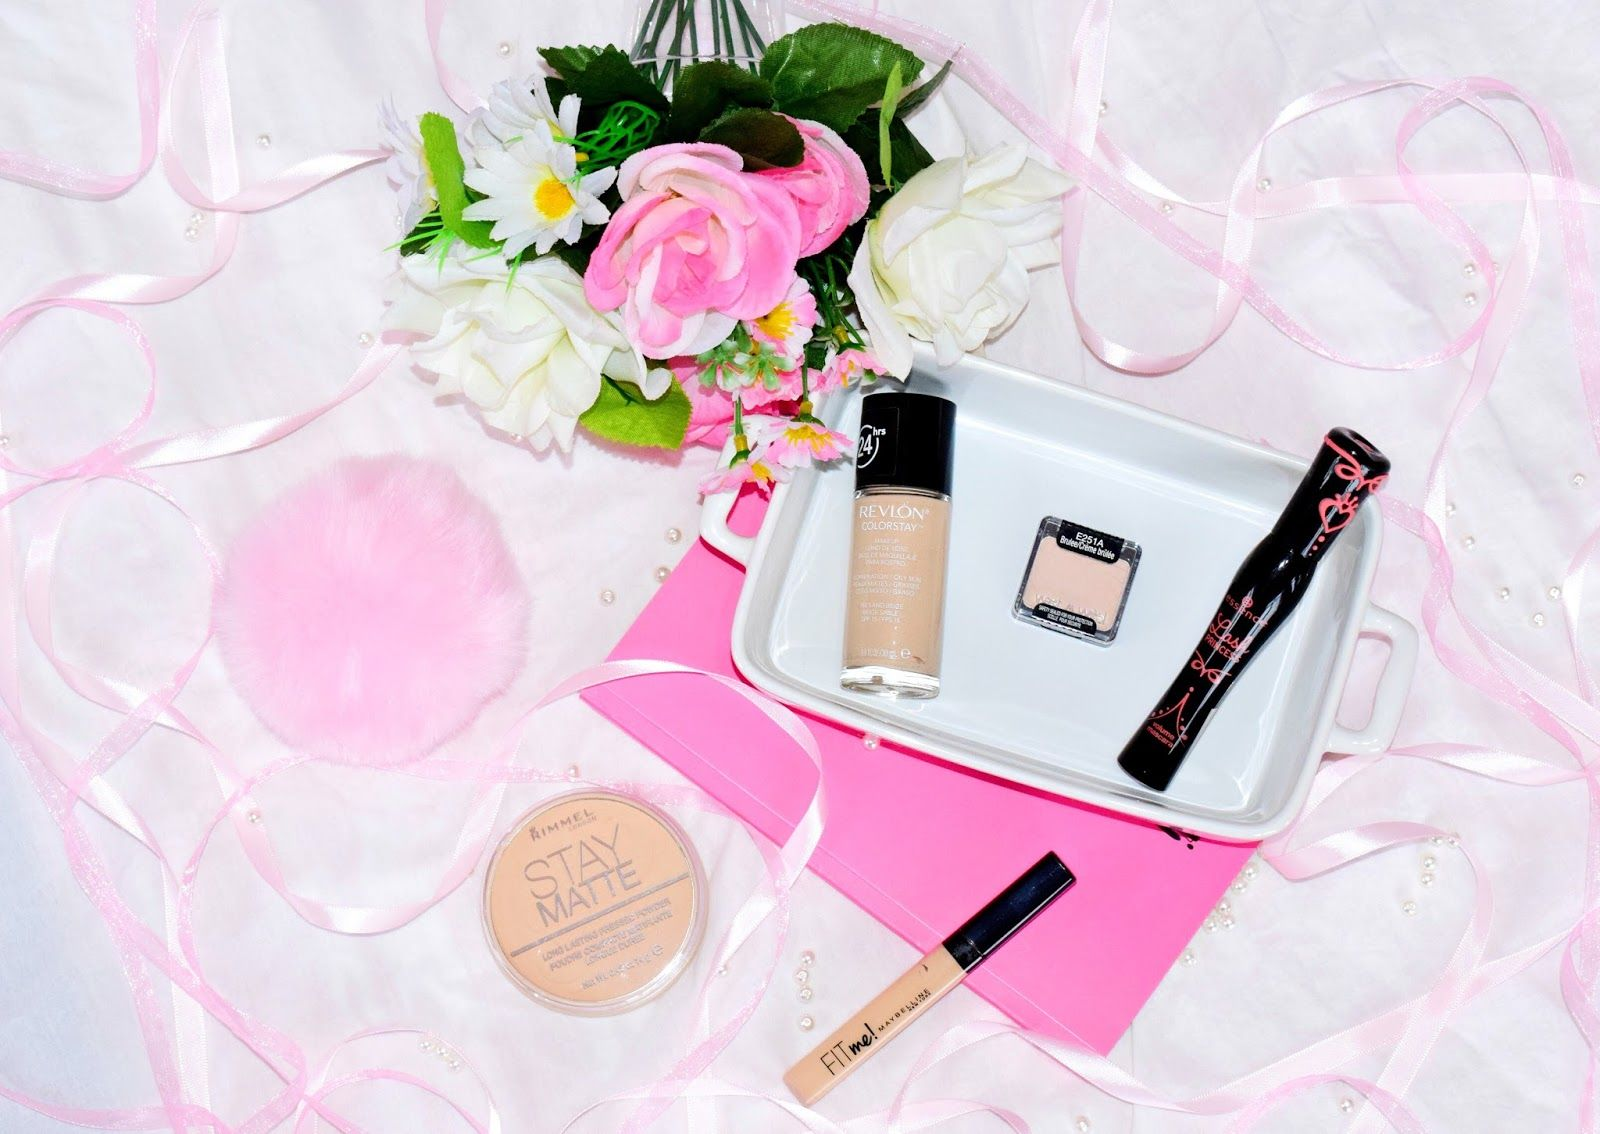 Carolina's Makeup Life : Top 5 Affordable Makeup Products That I Swear By